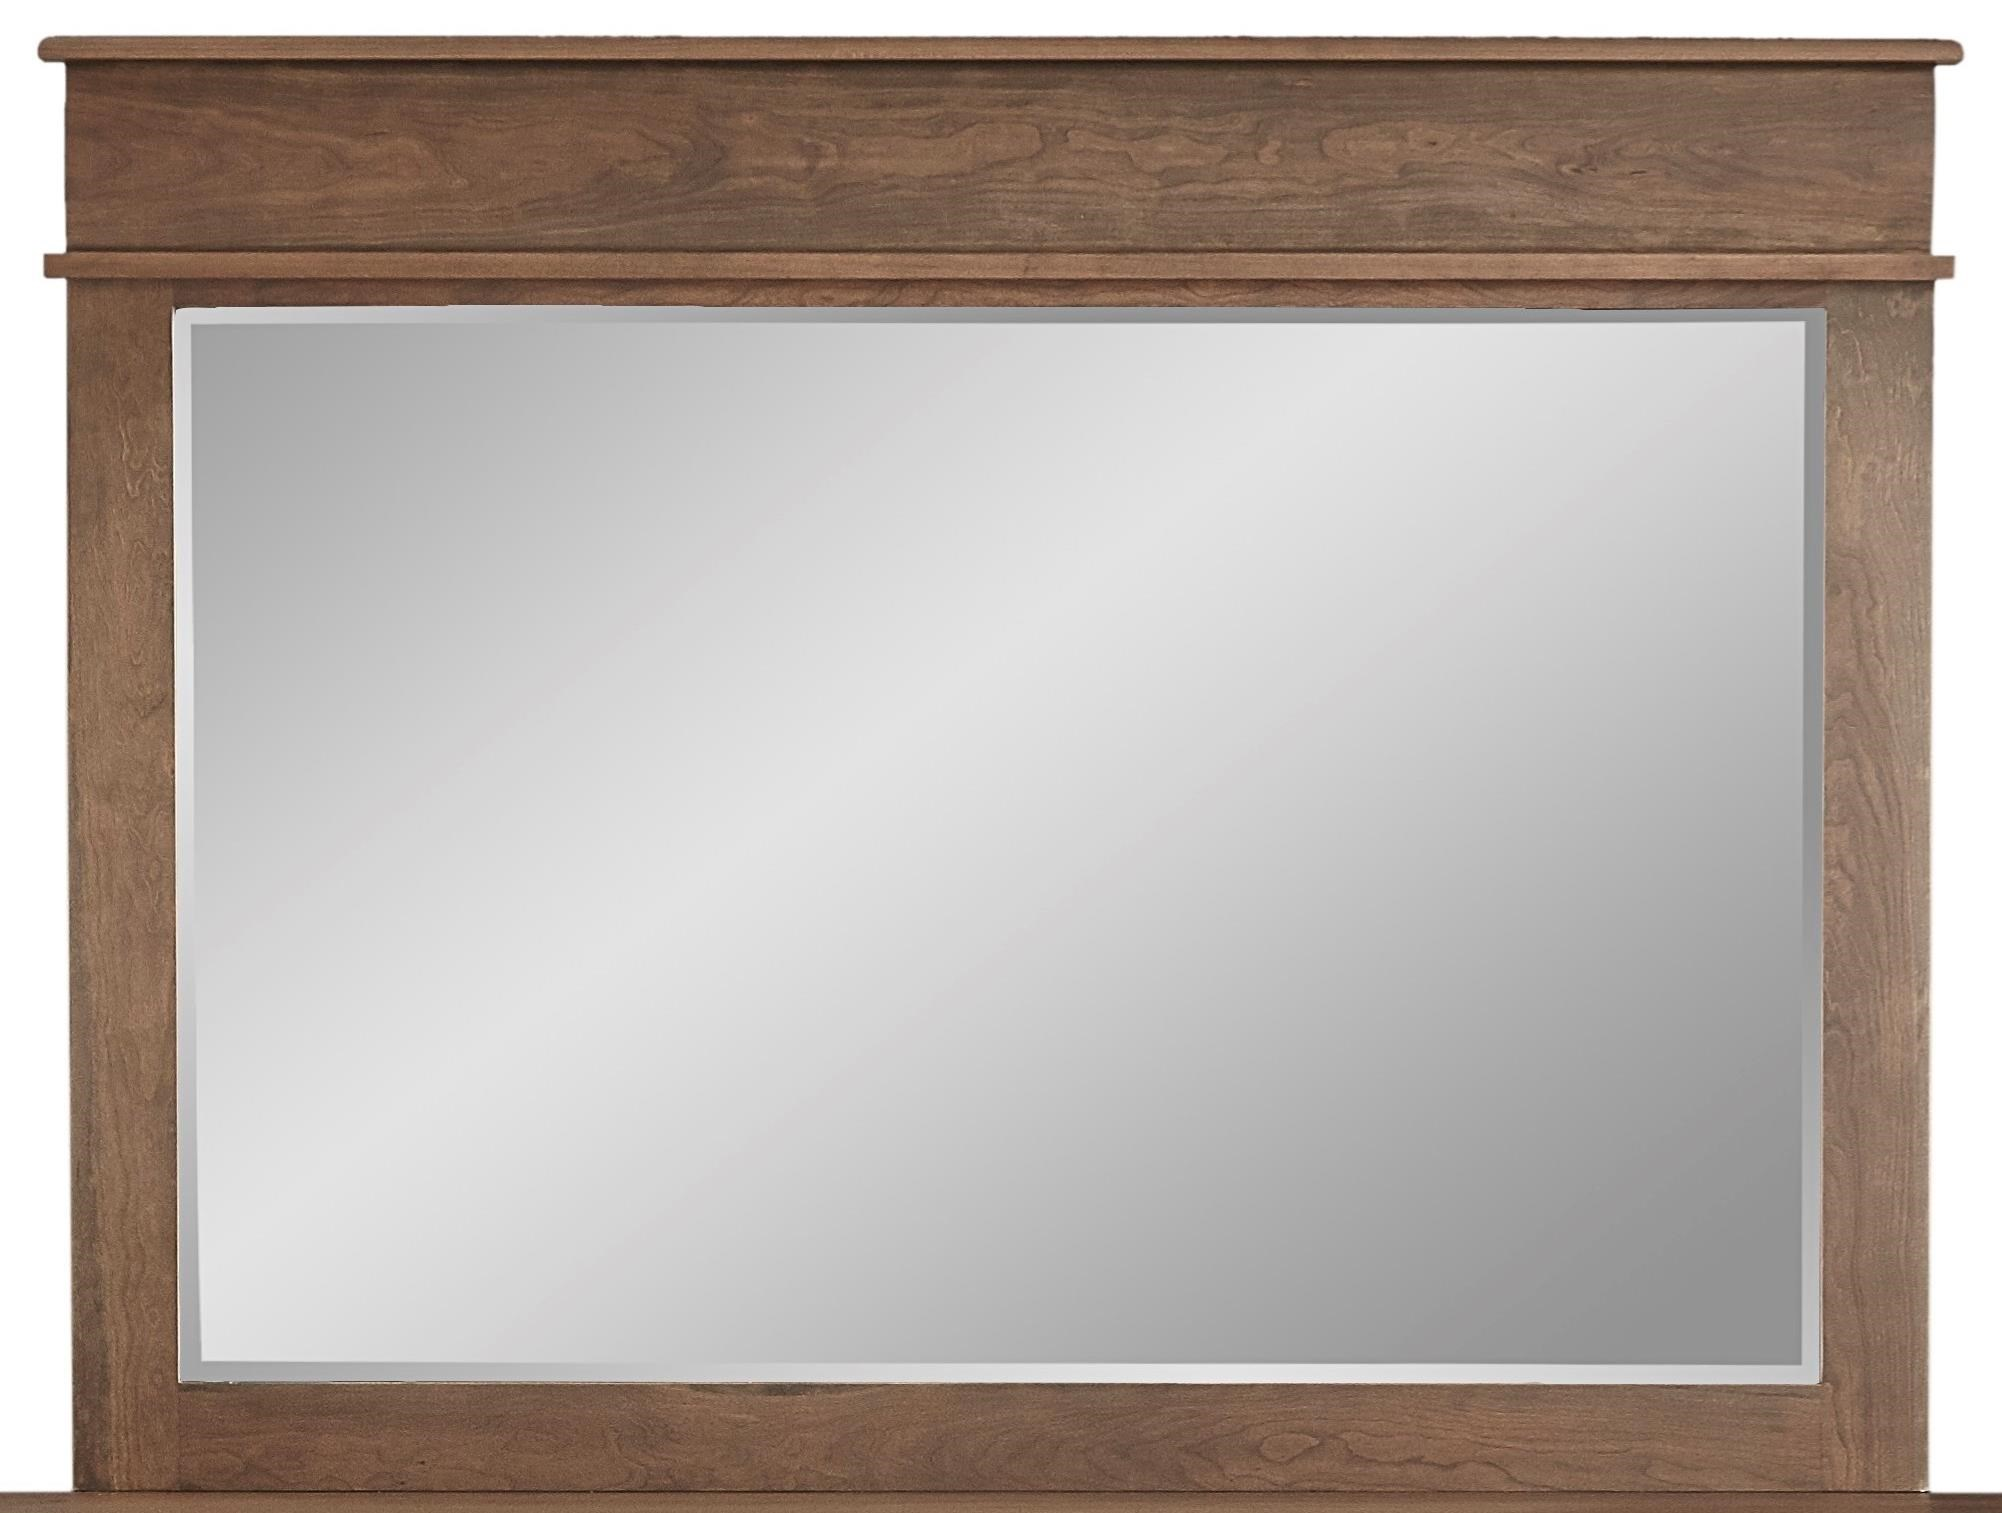 Highland Mirror by Daniel's Amish at Saugerties Furniture Mart